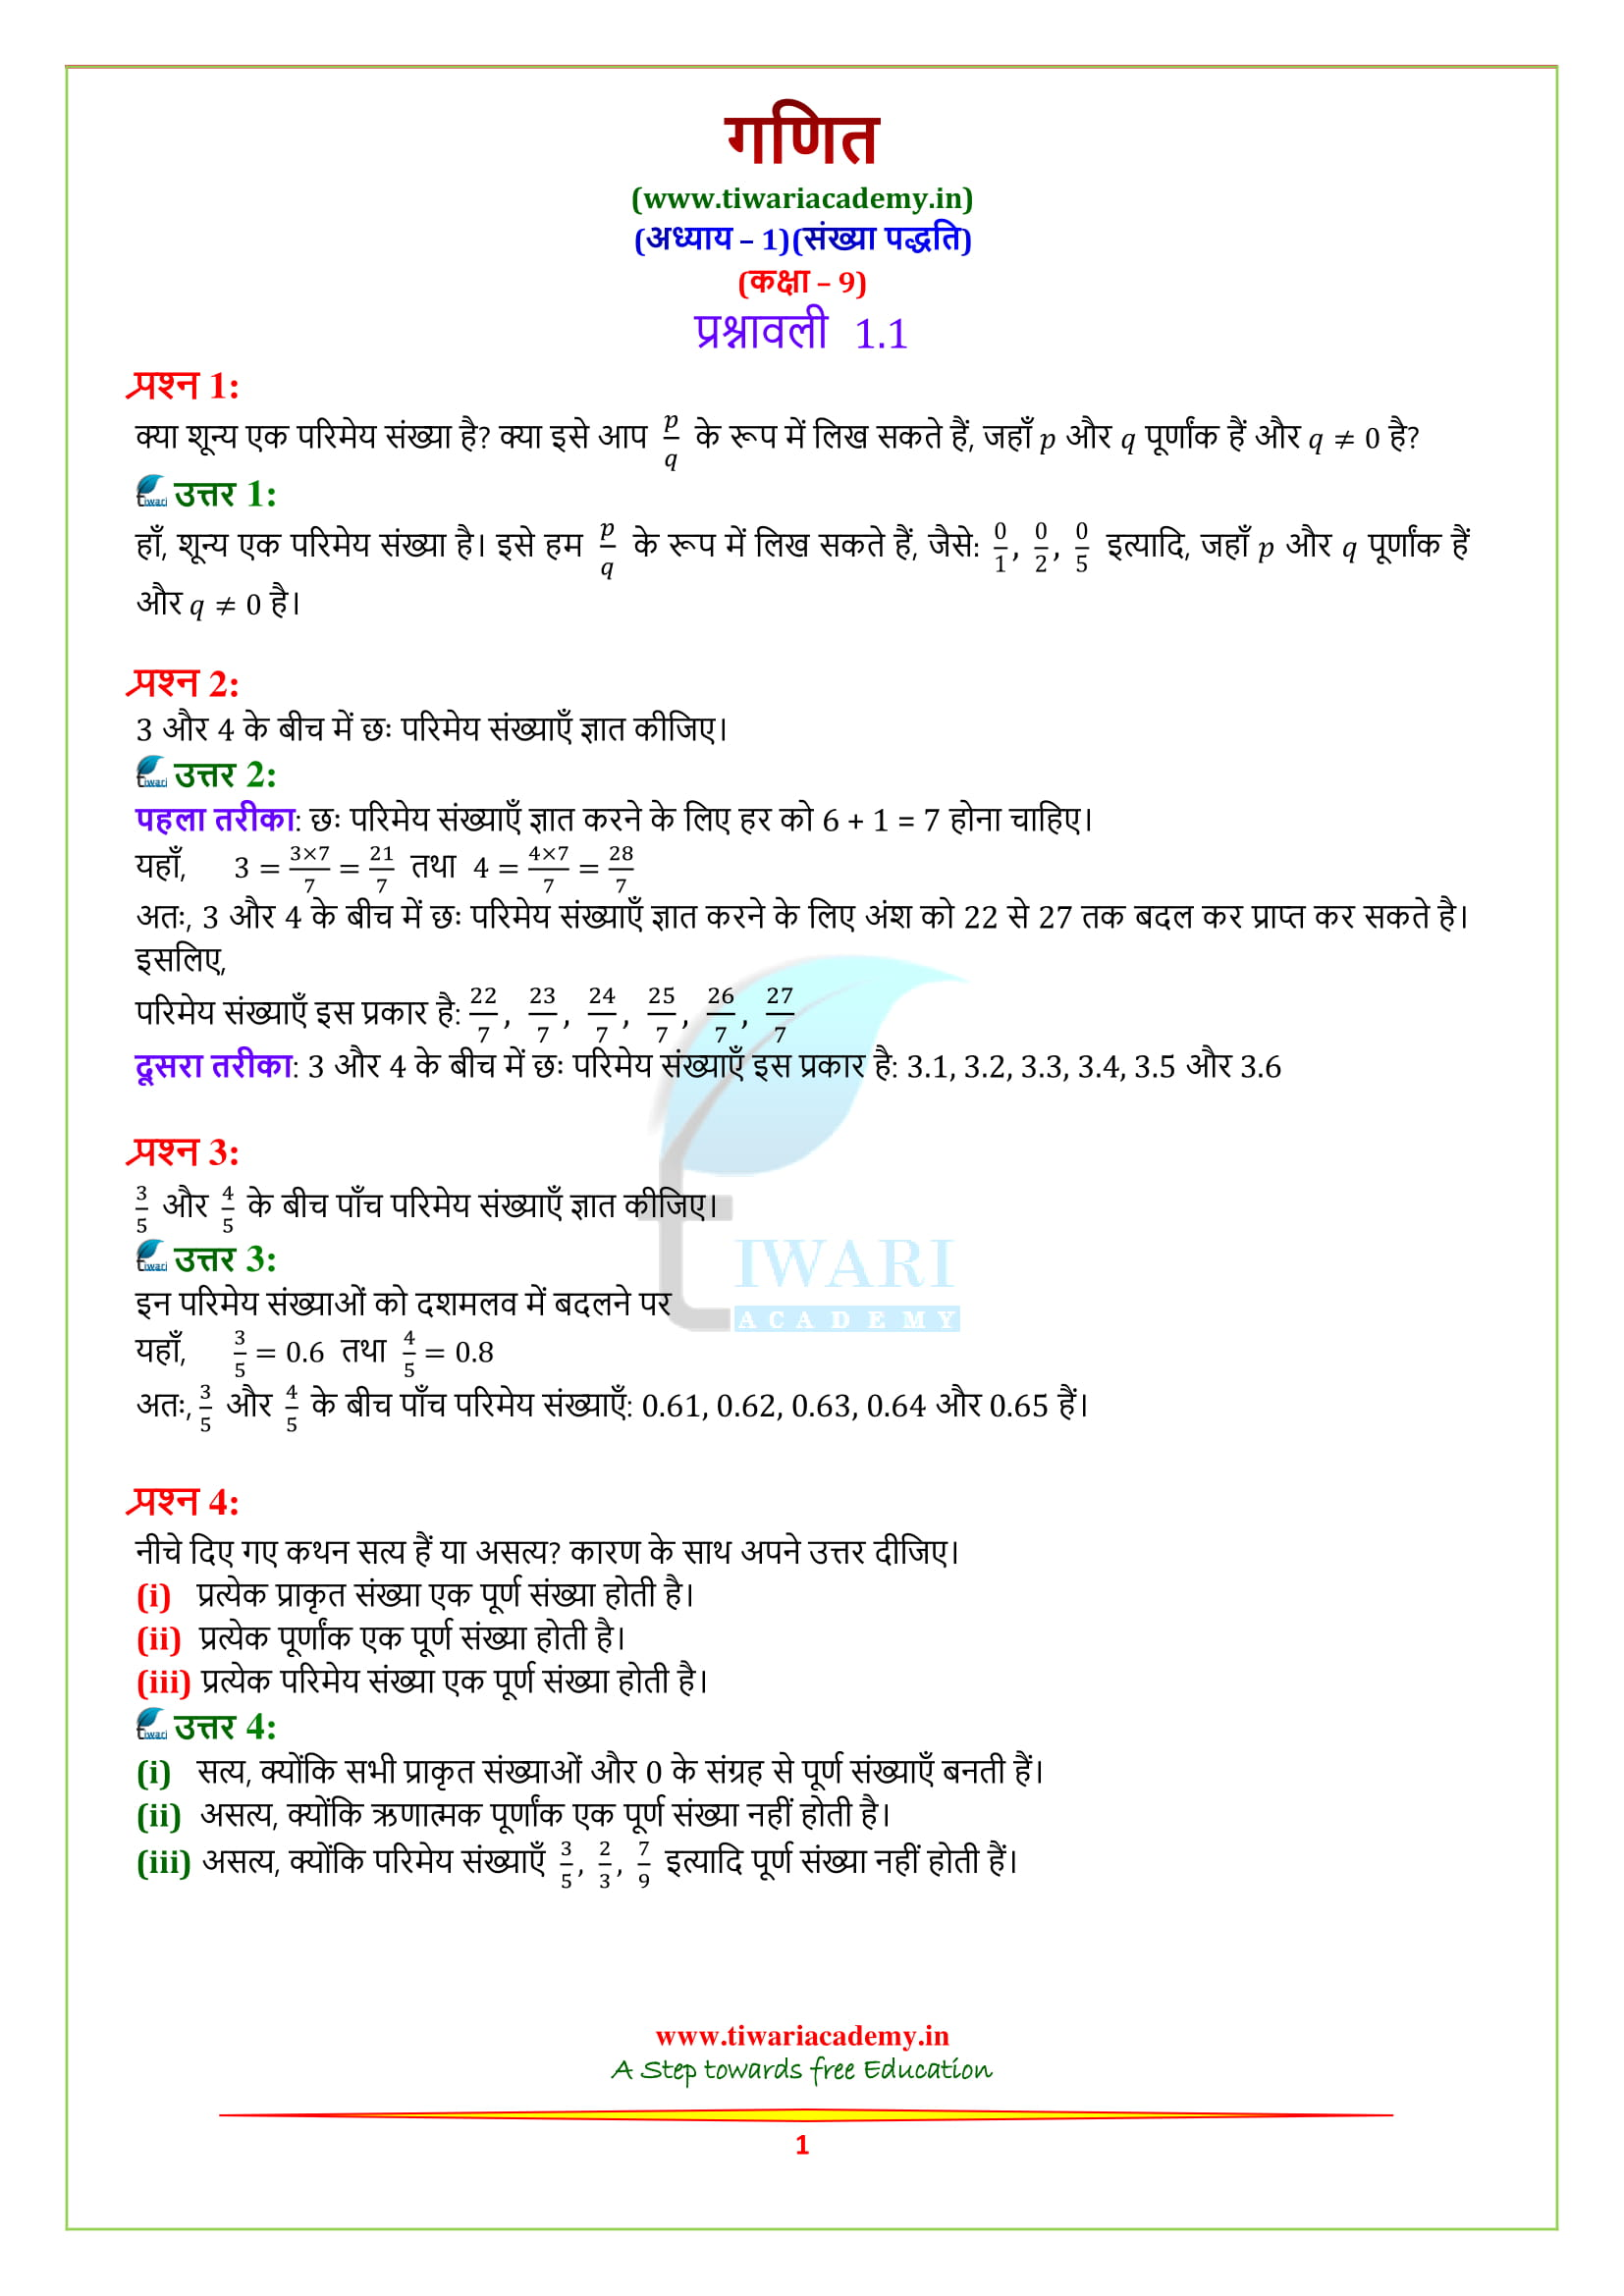 9 Maths Exercise 1.1 solutions in hindi